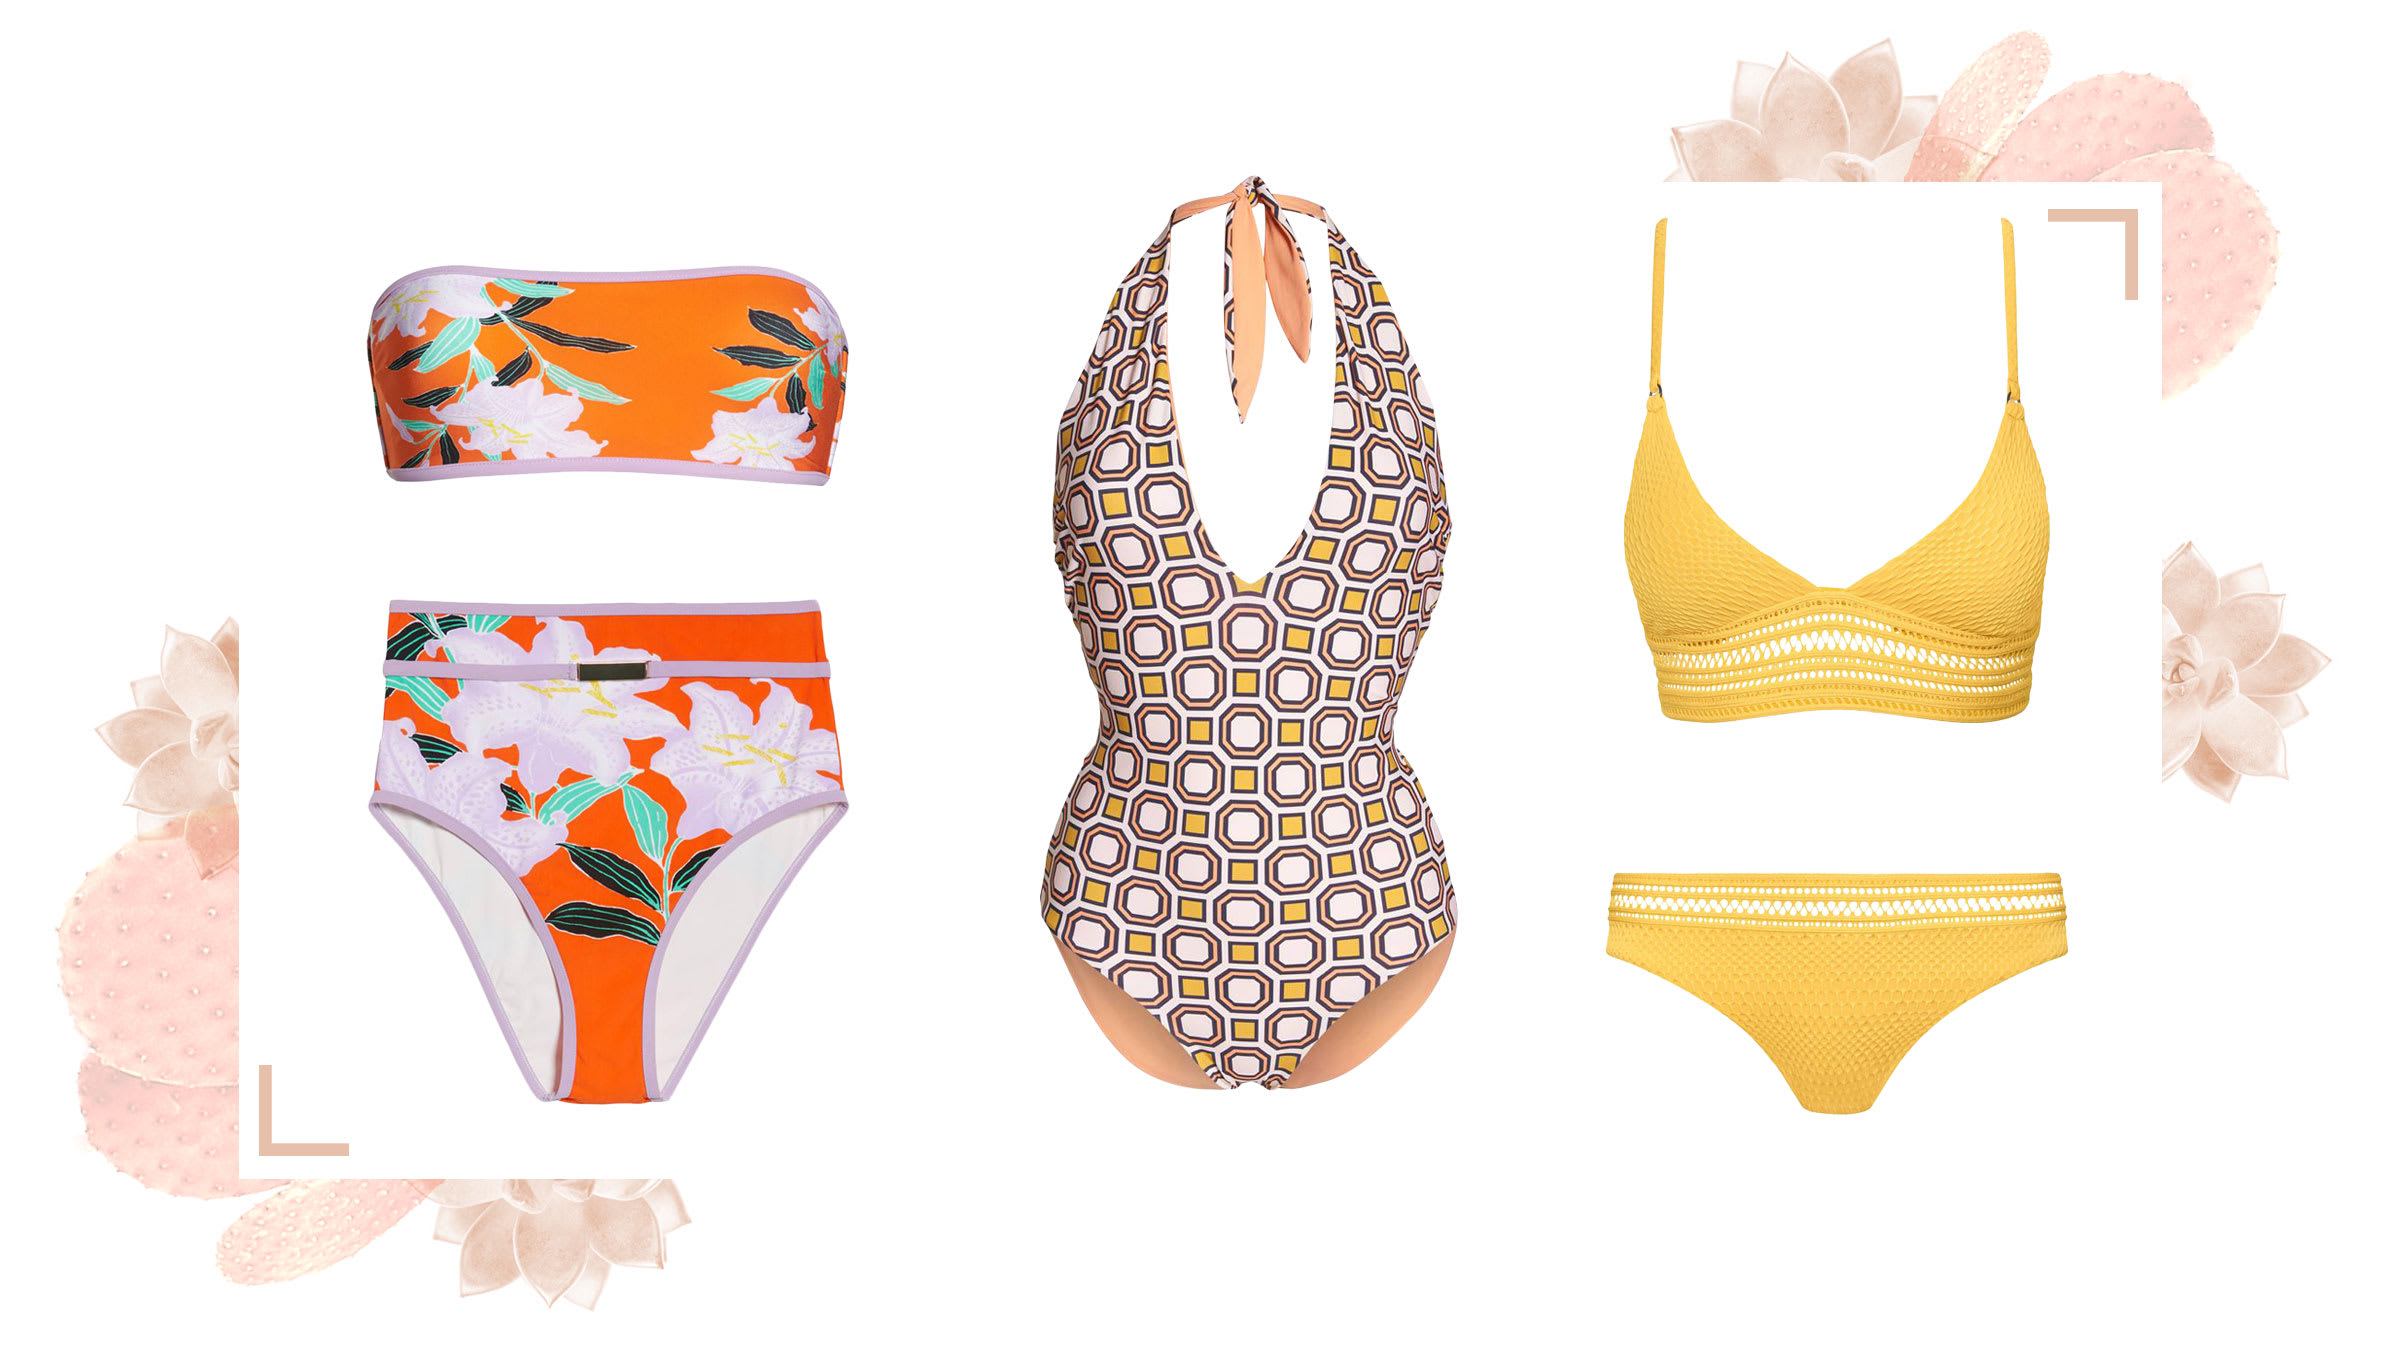 '70s inspired swimwear for a Palm Springs vacation